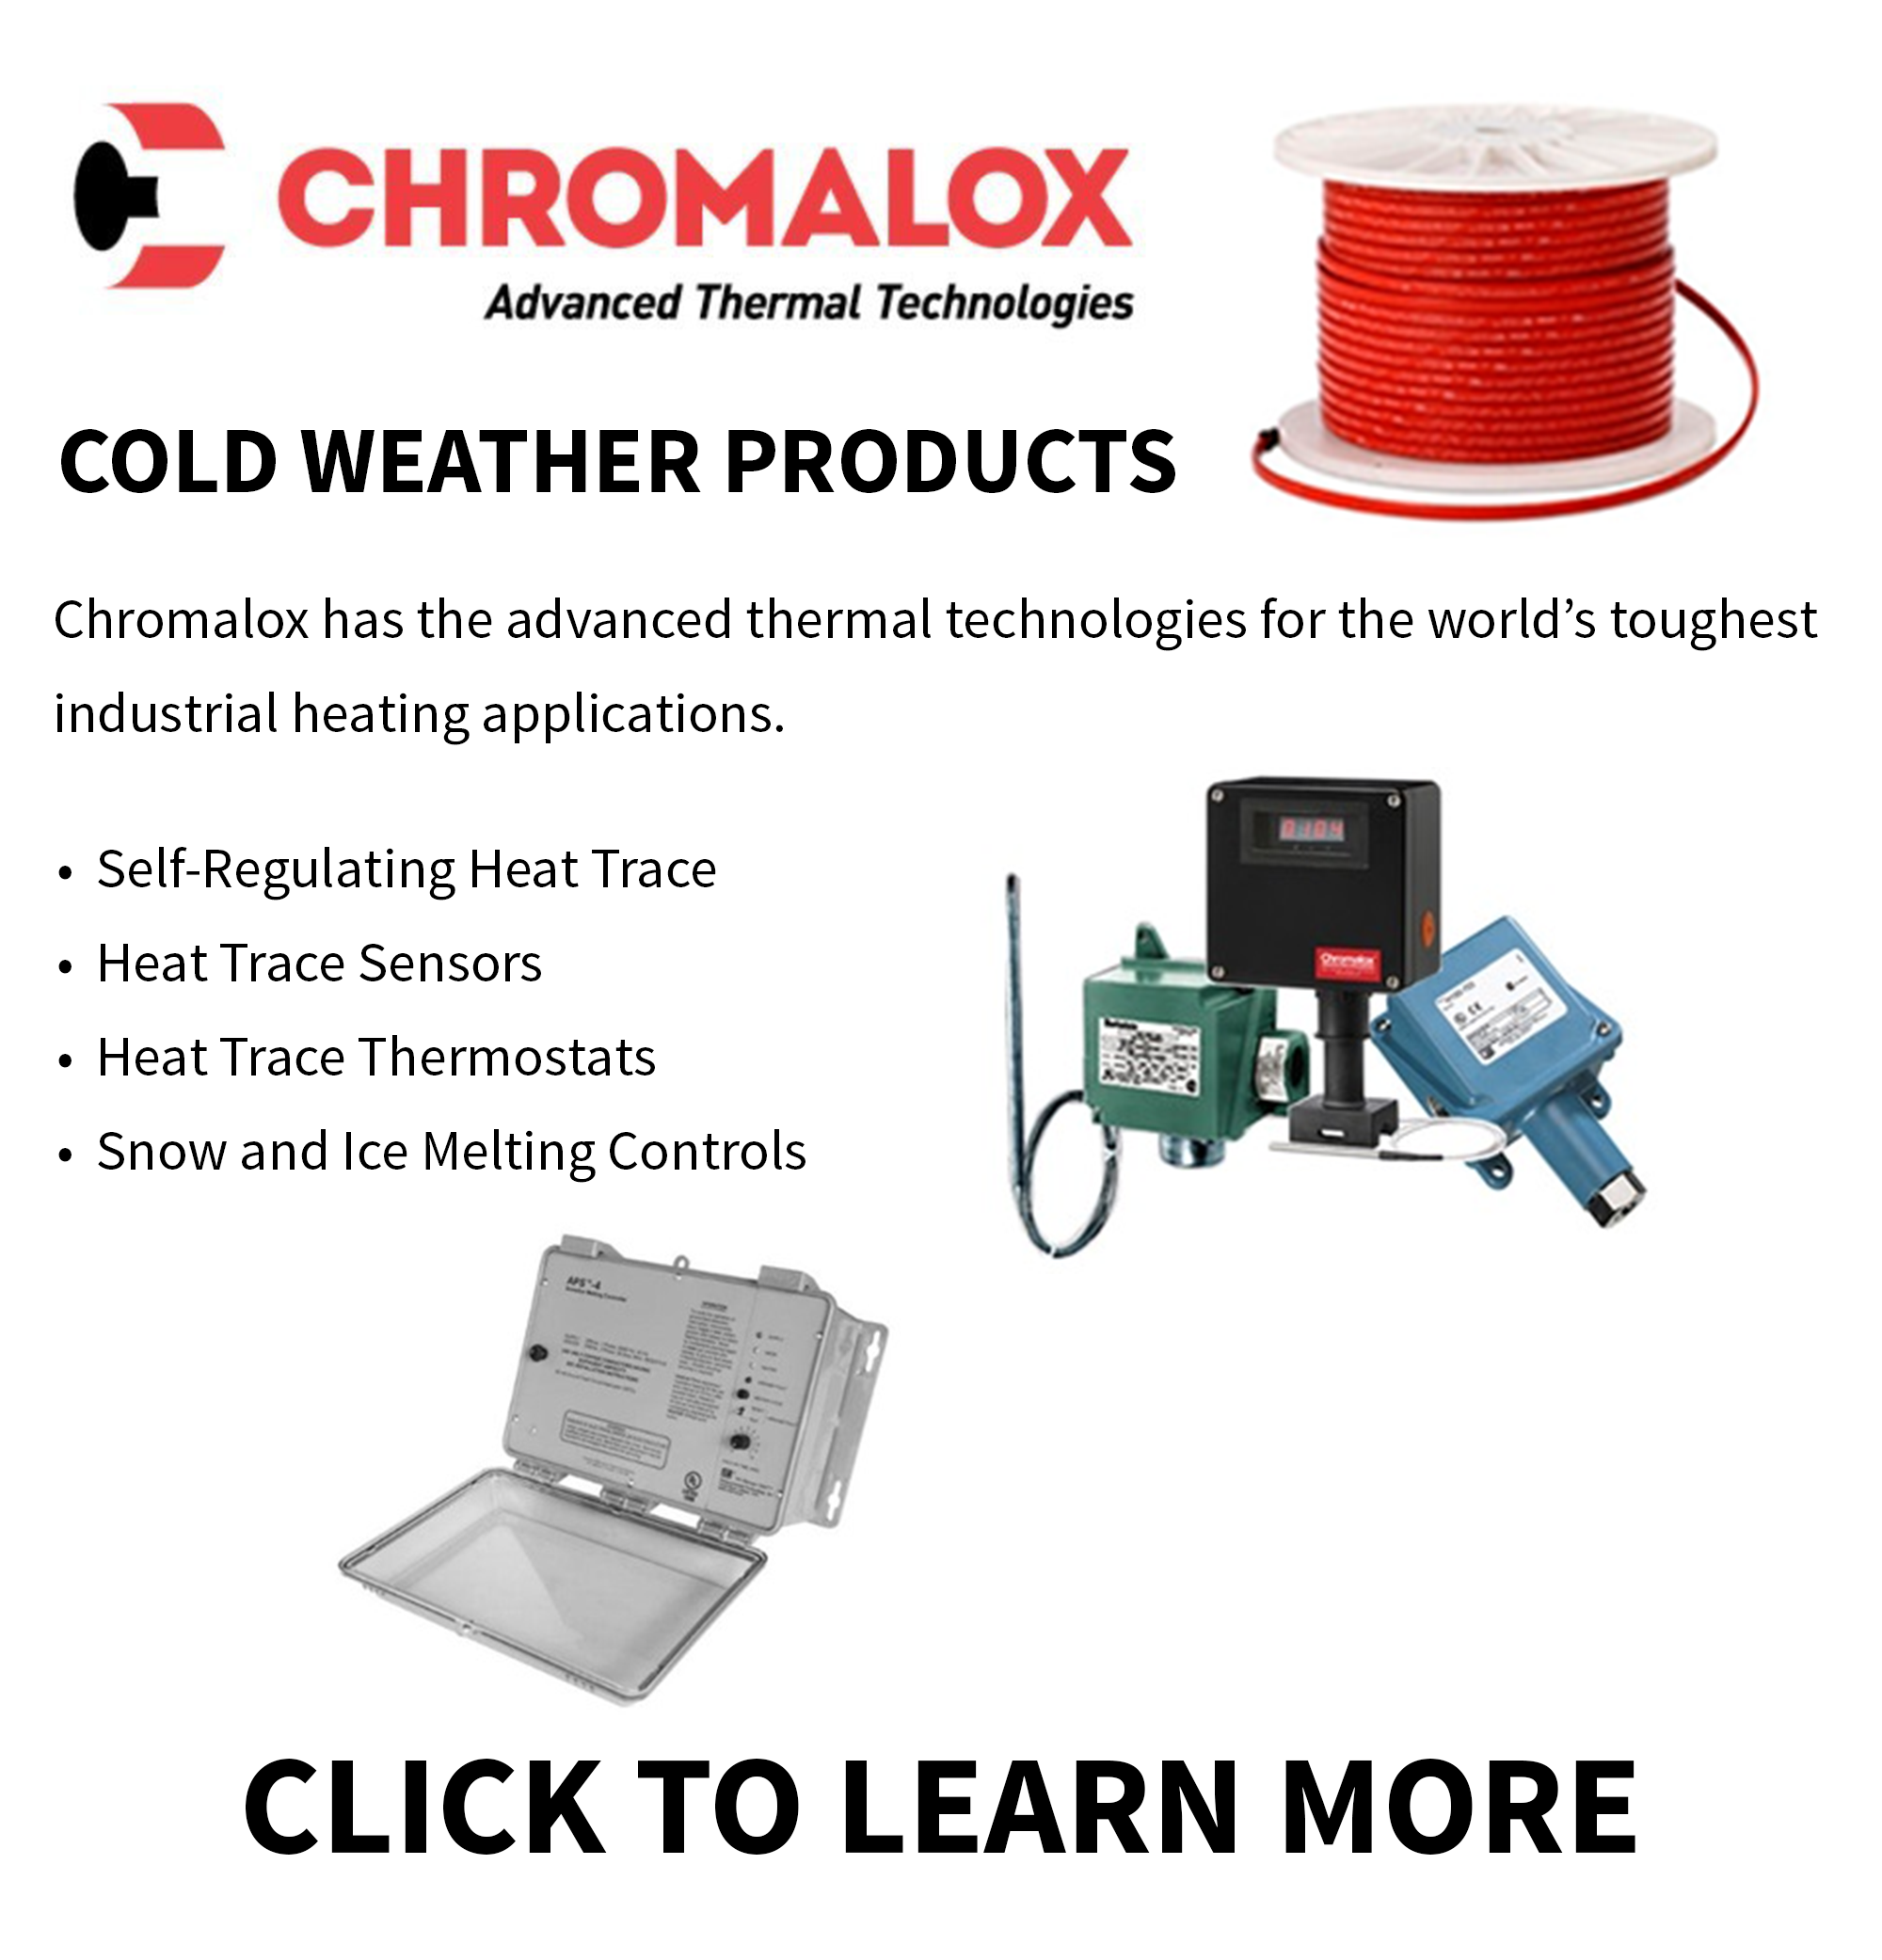 Ohio Valley Industrial Services- Chromalox Cold Weather Products